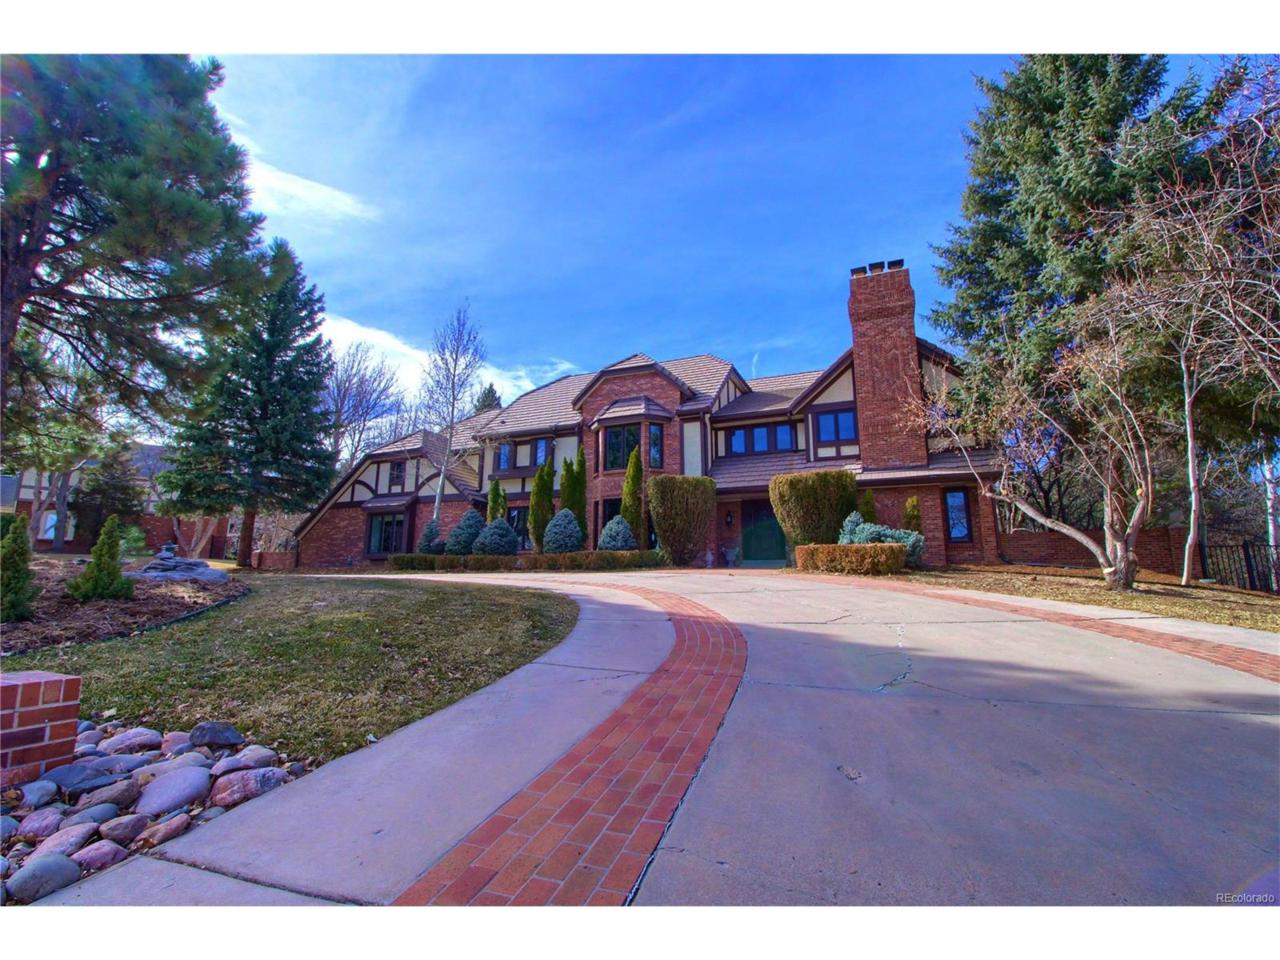 4663 S Elizabeth Court, Cherry Hills Village, CO 80113 (MLS #6614932) :: 8z Real Estate